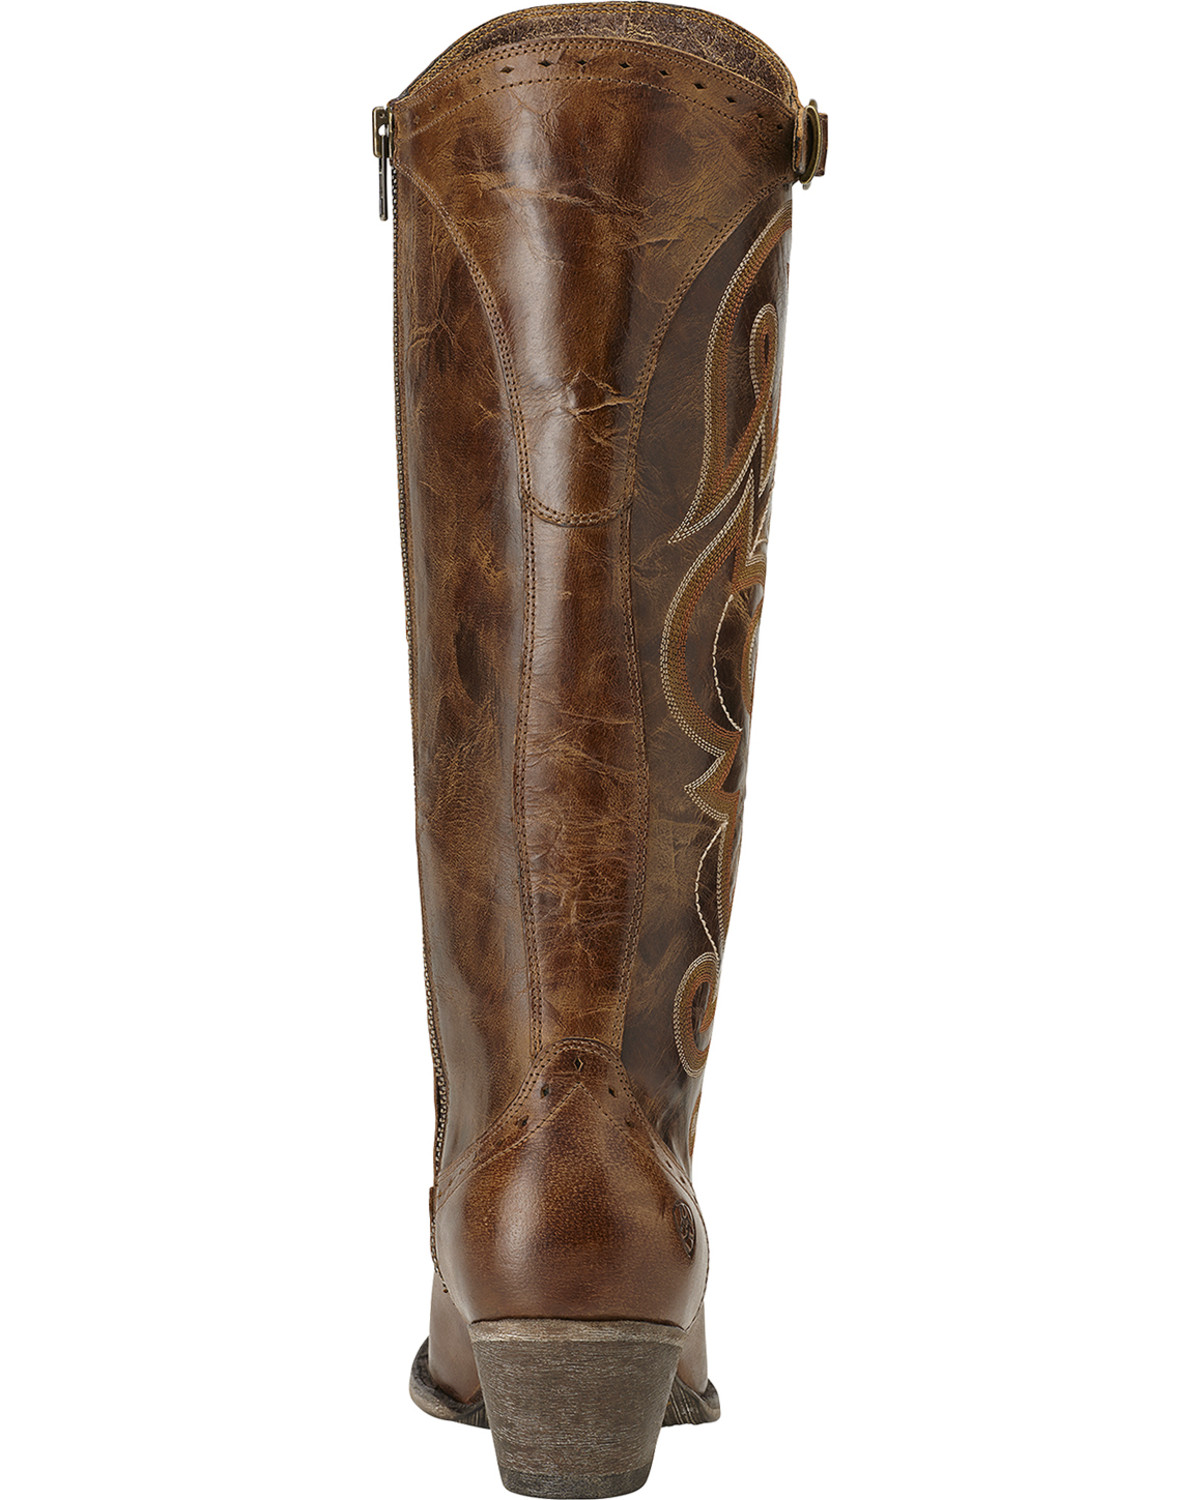 Ariat Wanderlust Tall Cowgirl Riding Boots - Medium Toe | Sheplers